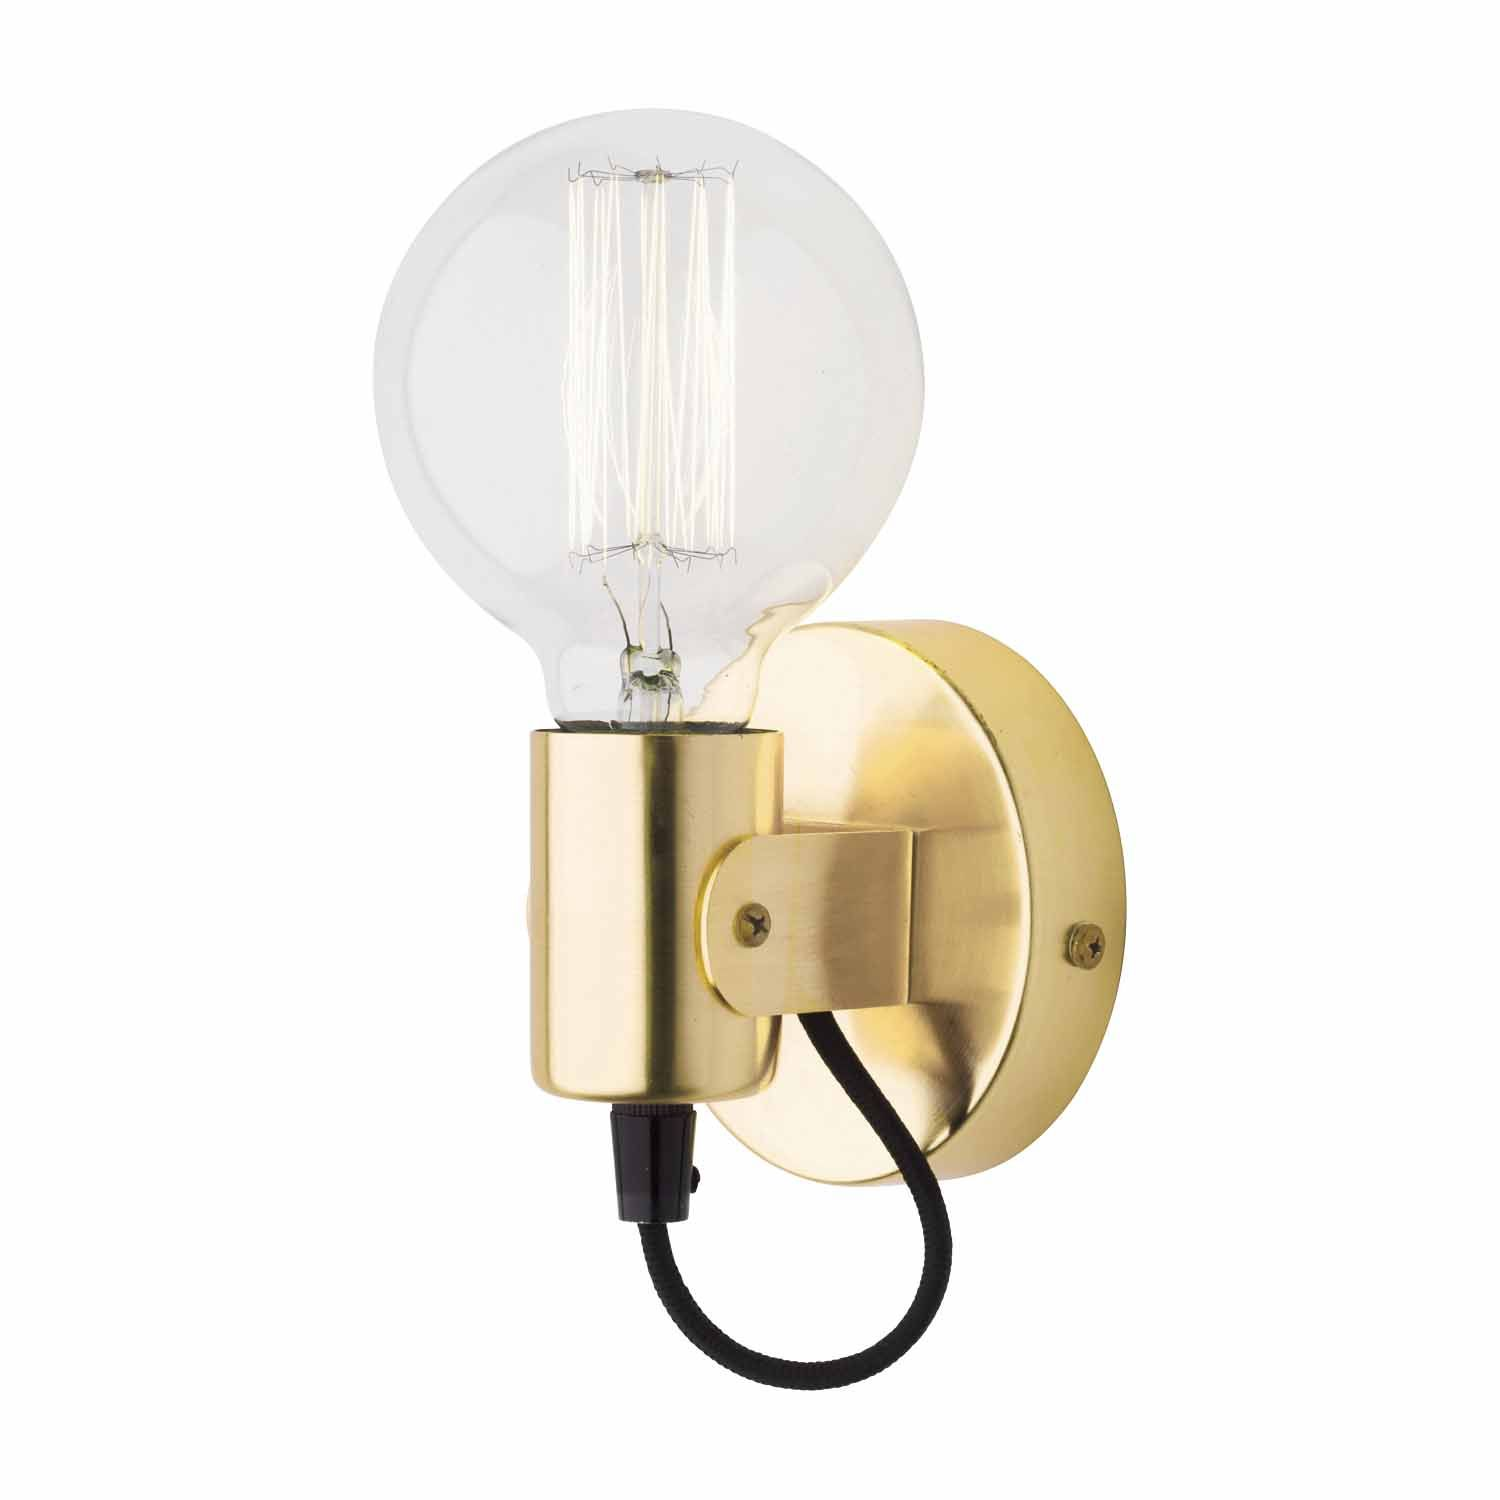 Mercator Wall Light E27 Lights Bulkheads Mitre 10